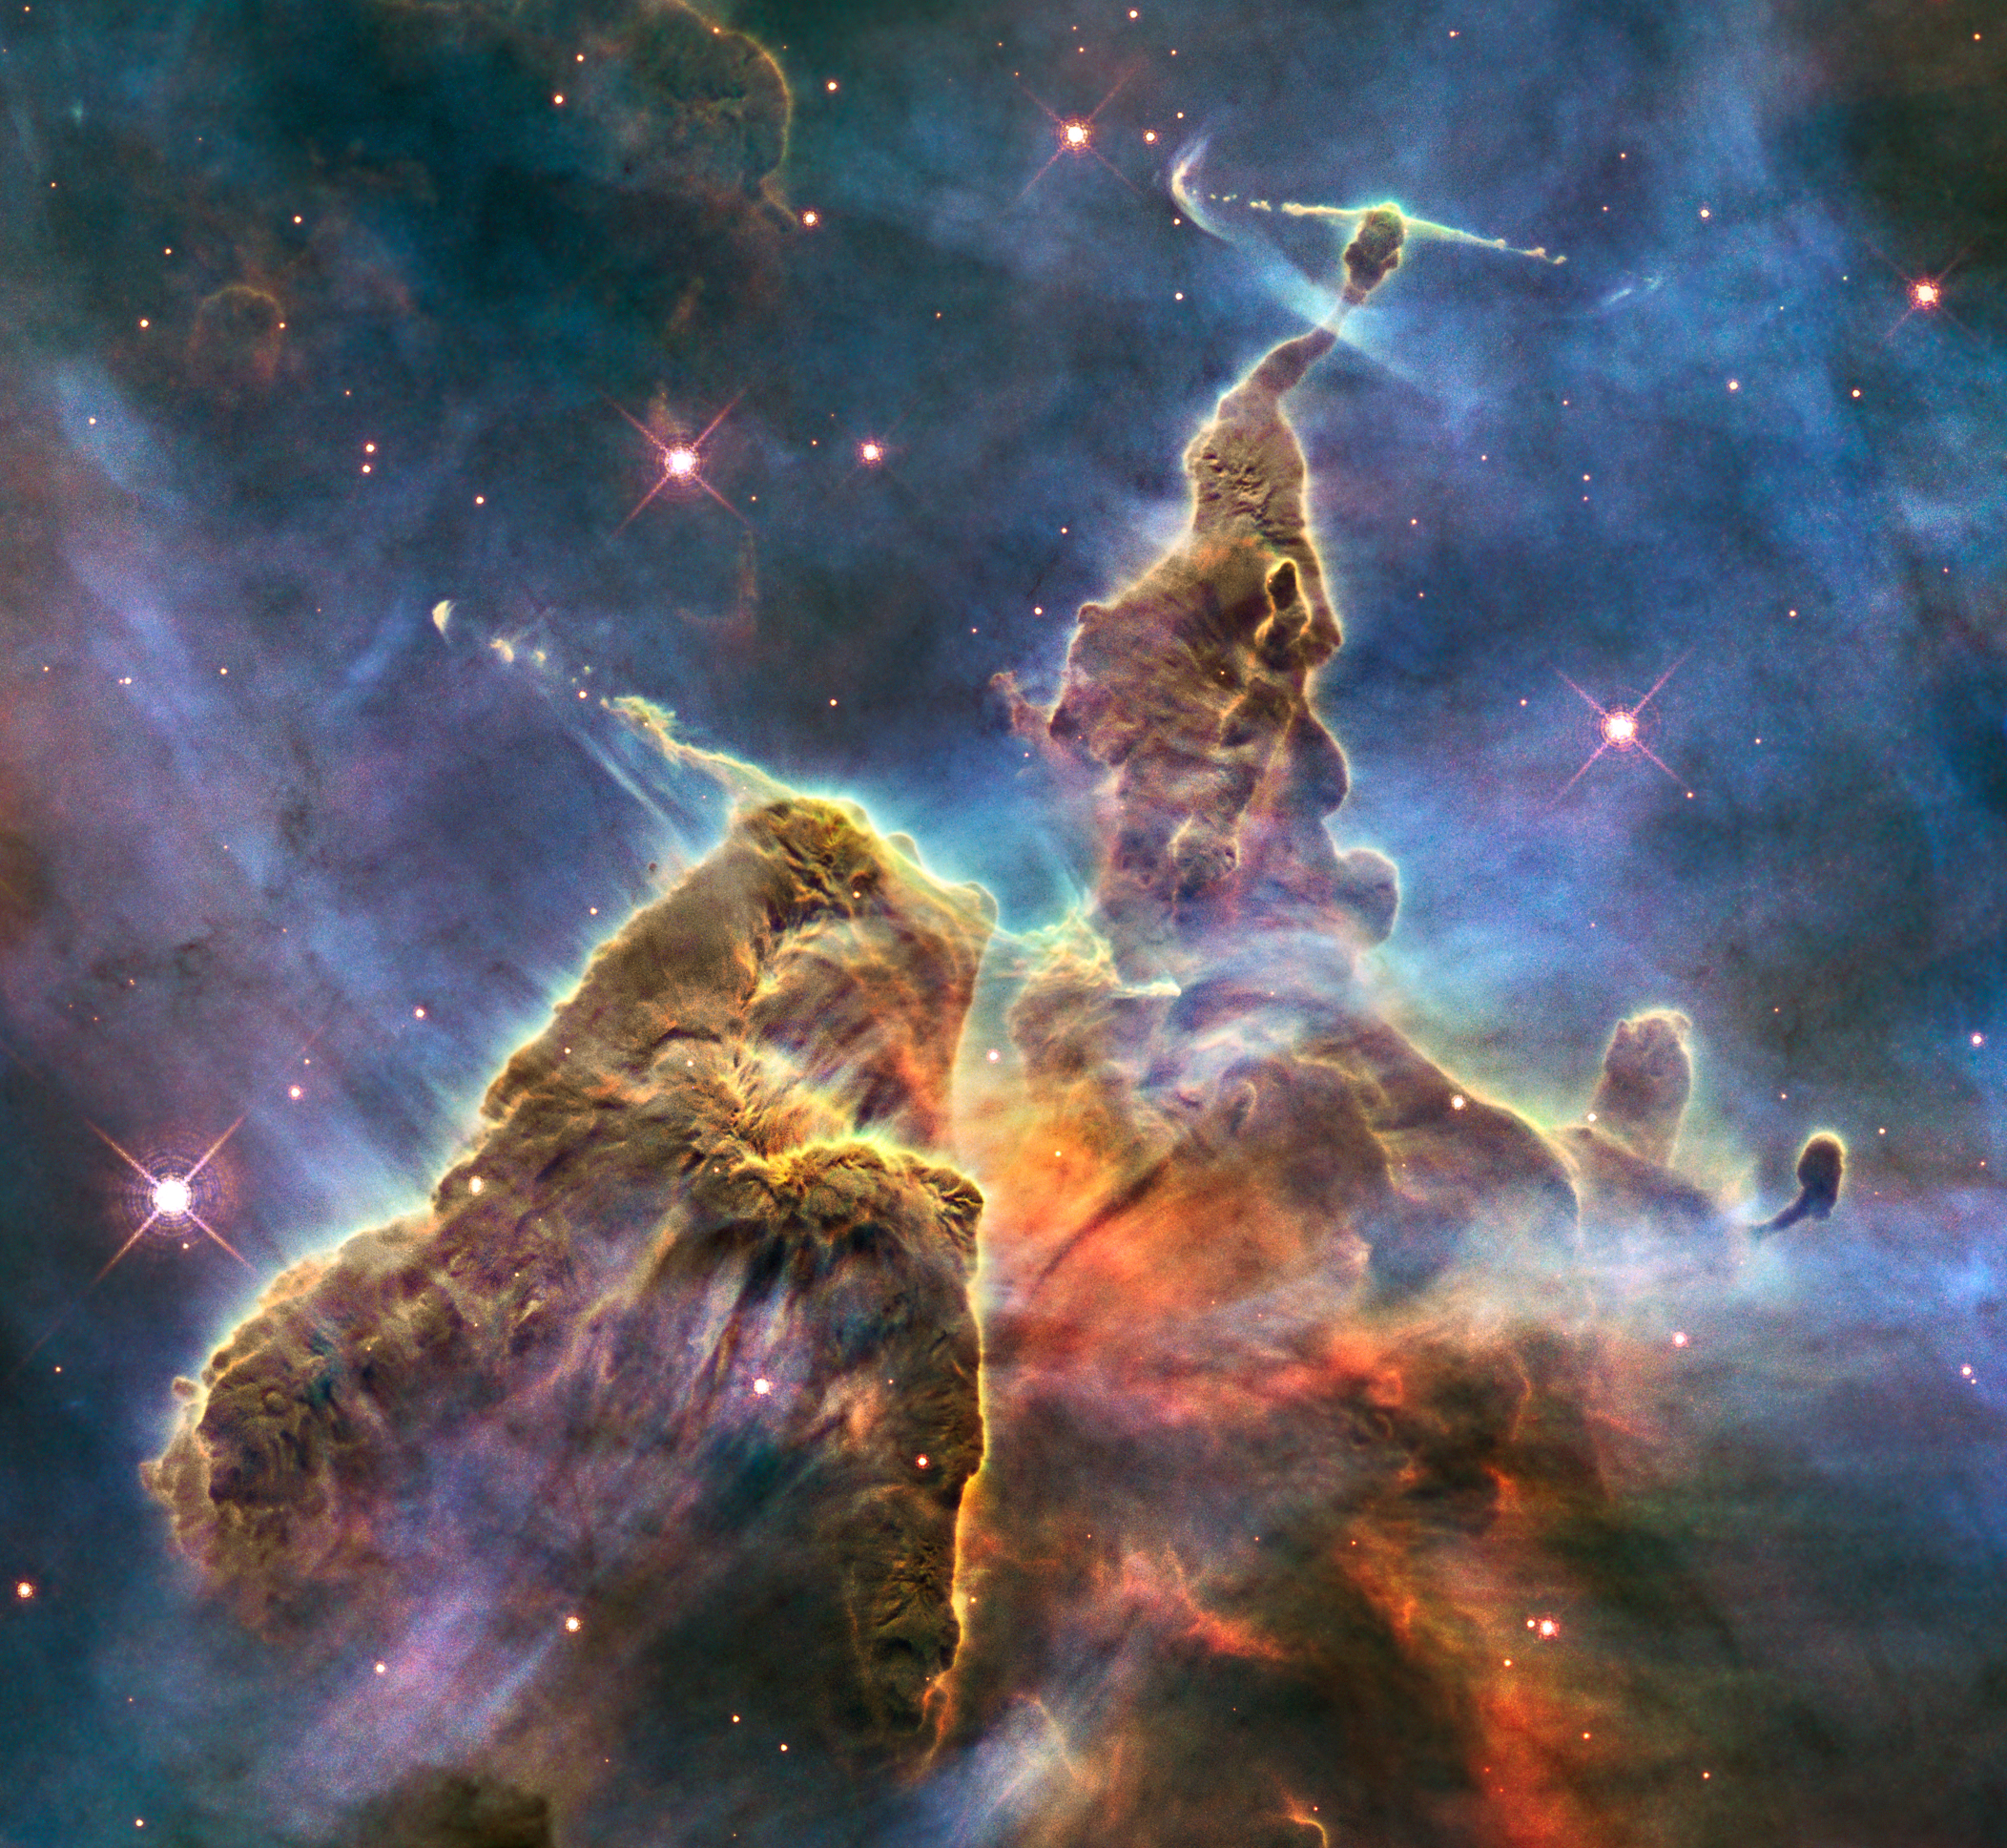 Hubble space telescope Stock Photos and Images. 90 hubble space